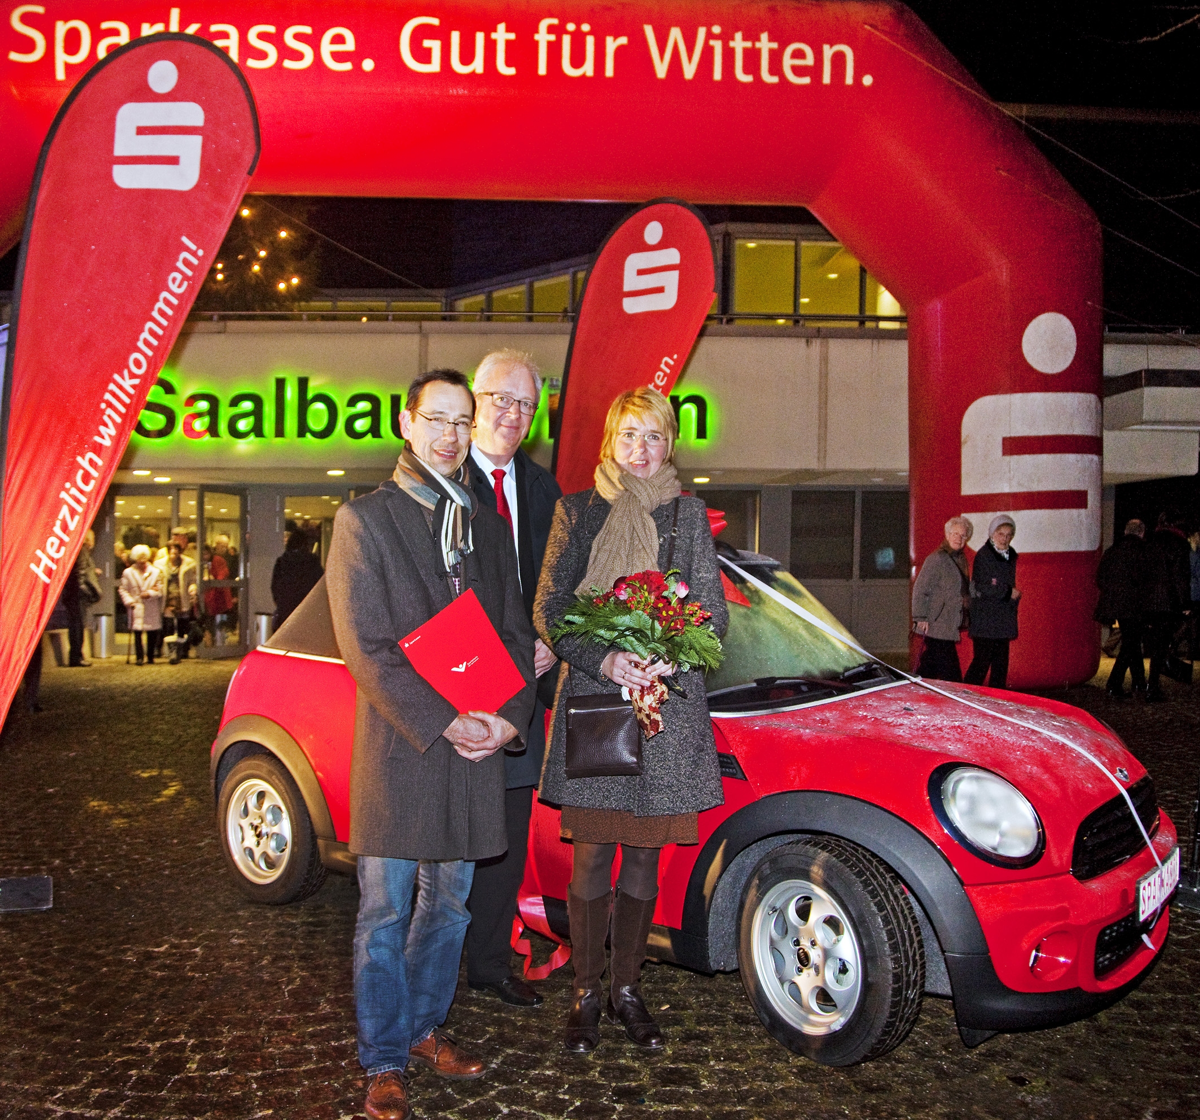 Sparlotterie-Gala am 13.12.2013